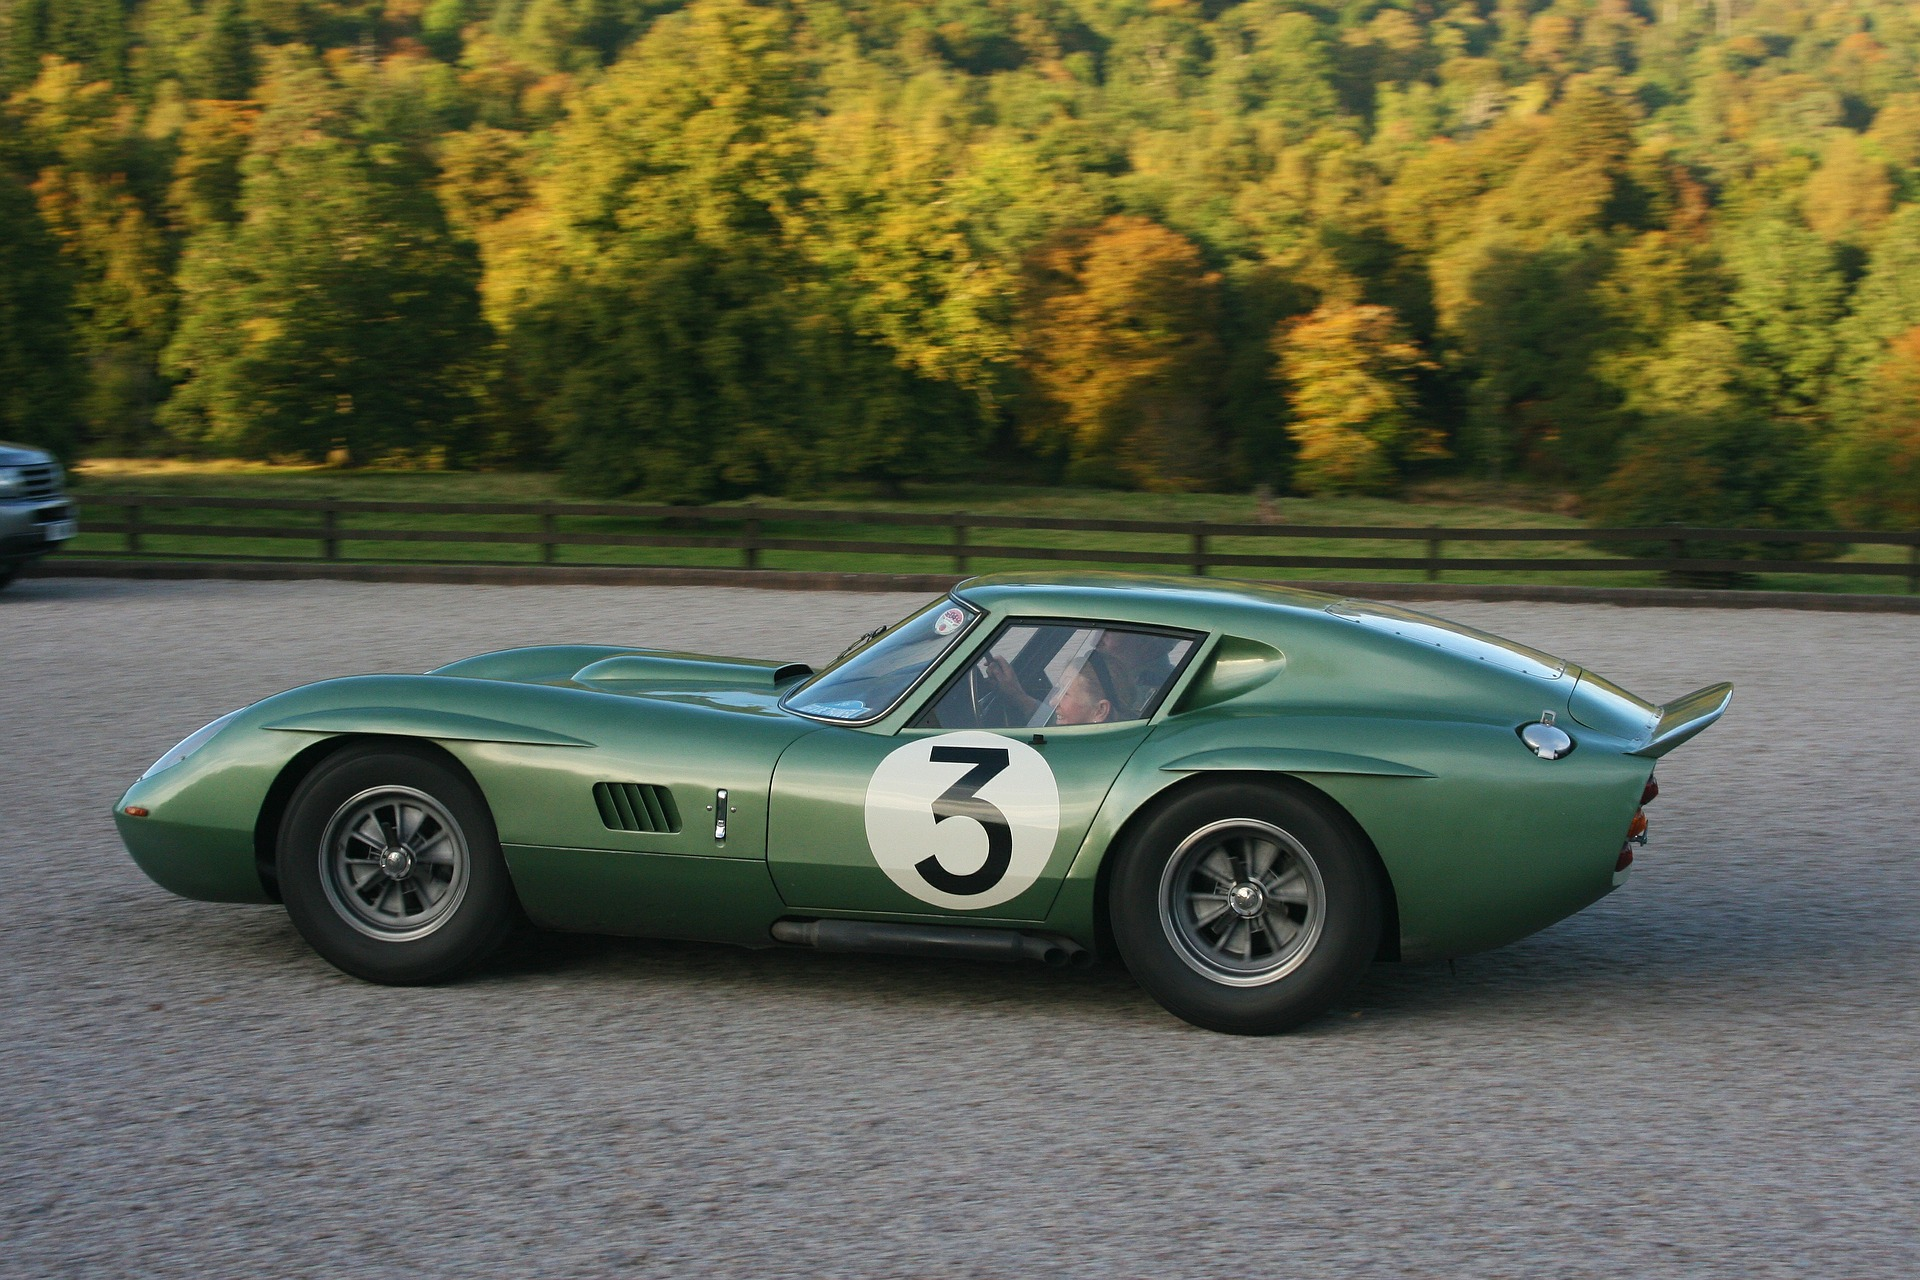 Get To Know The Cars Of Ford V Ferrari